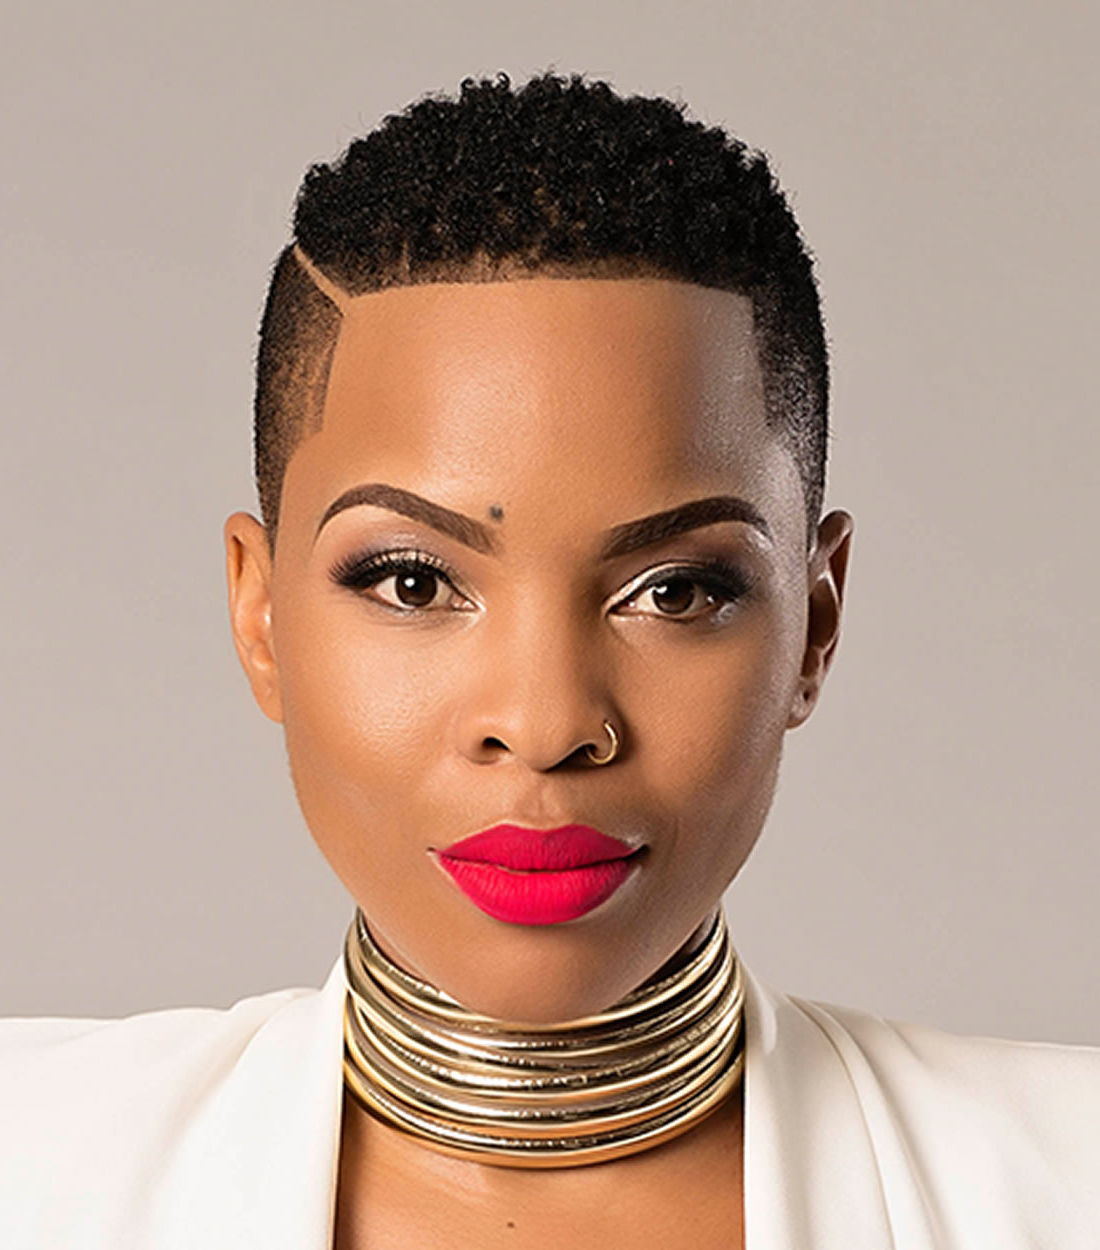 32 Exquisite African American Short Haircuts And Hairstyles For 2018 Inside Short Haircuts For Kinky Hair (View 2 of 25)